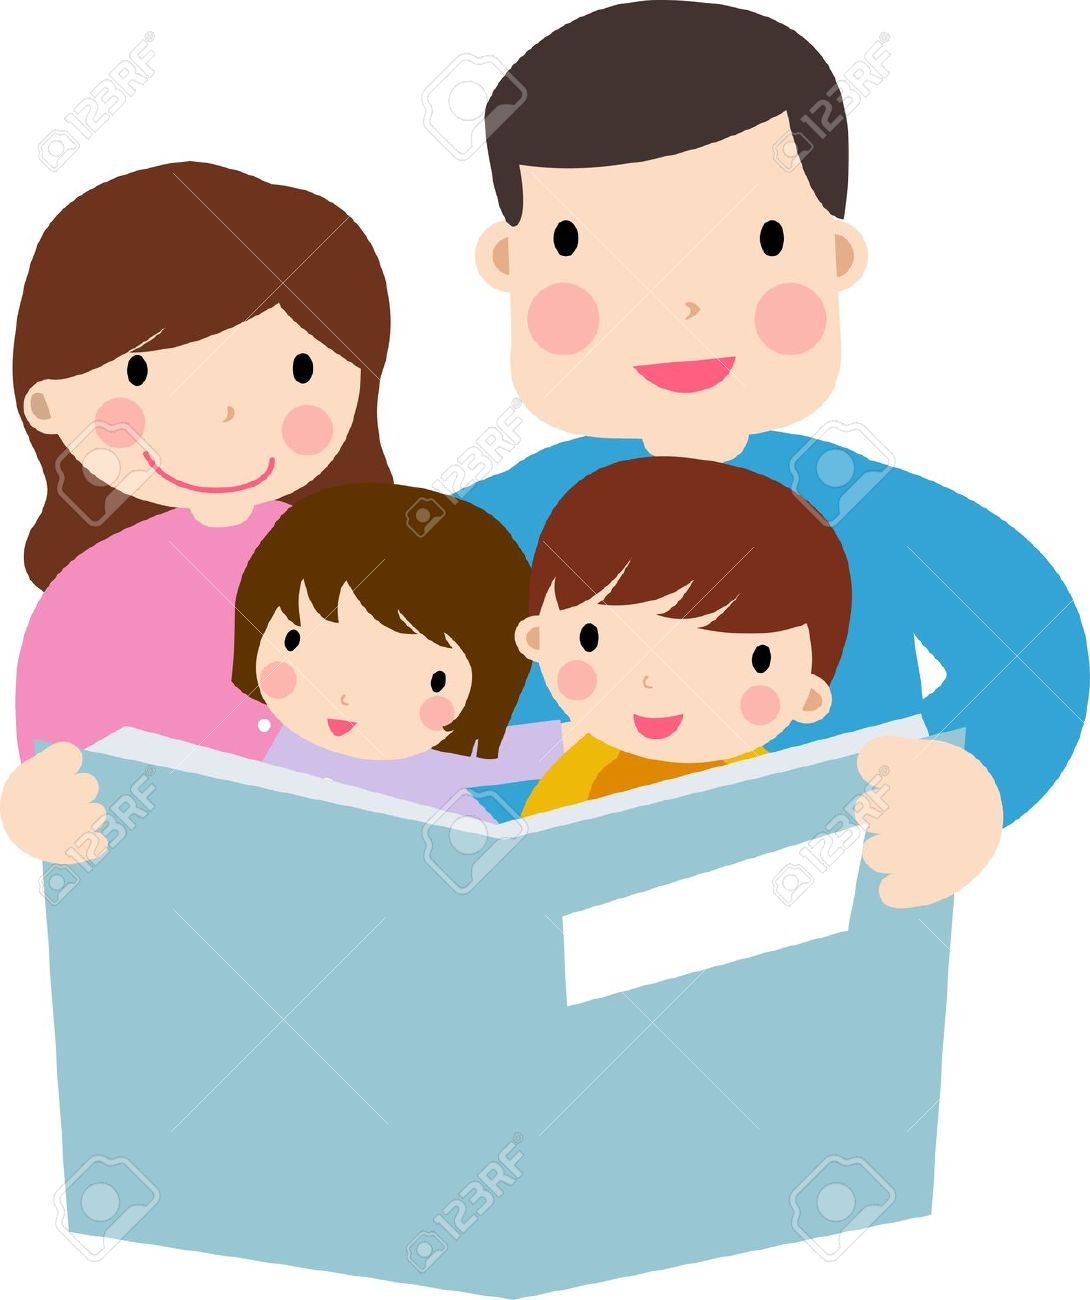 Parents And Children Clip Art.